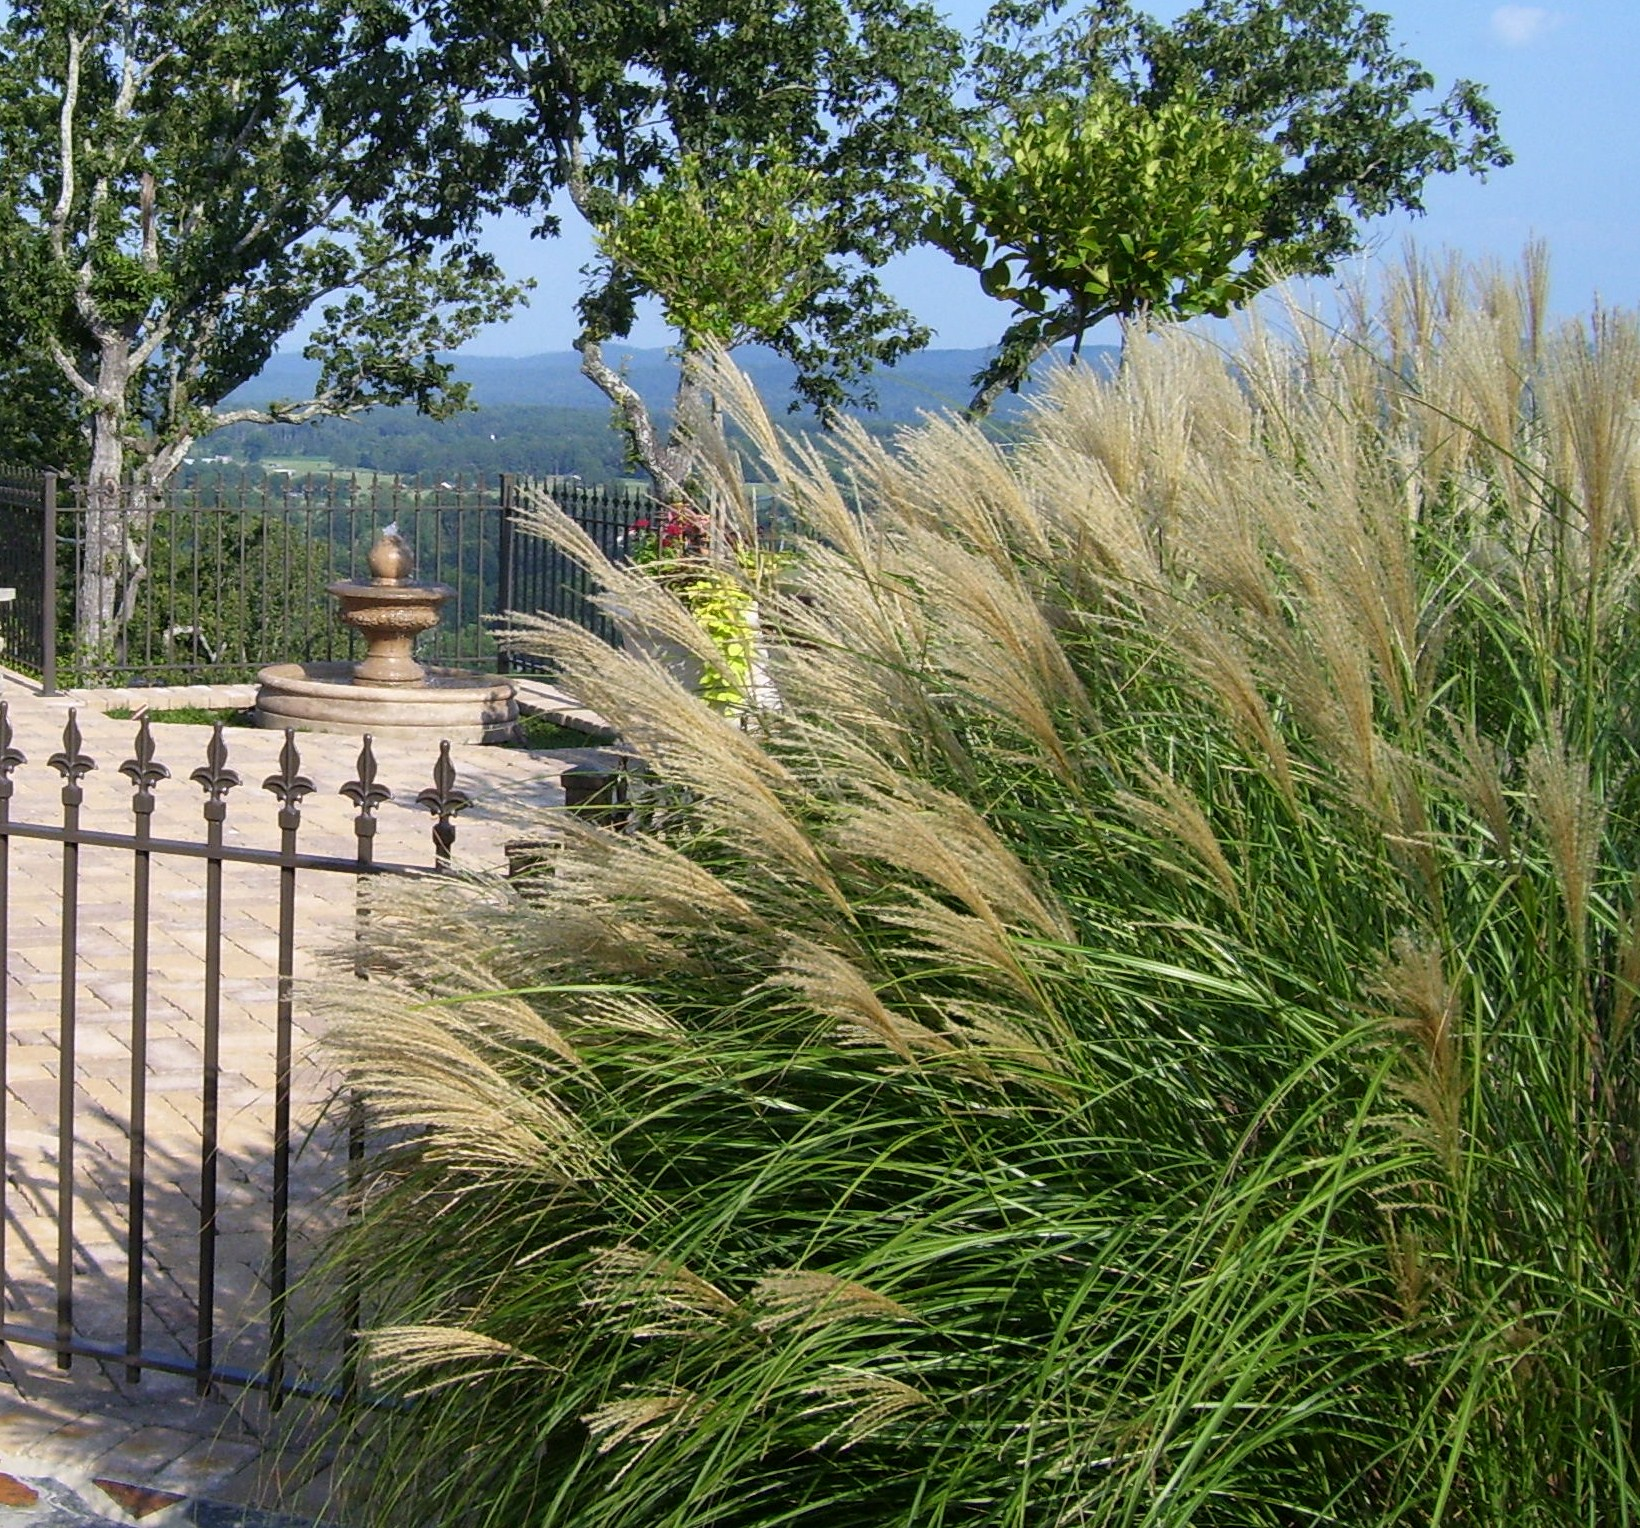 Ornamental grasses archives landscaping tipslandscaping tips for Best ornamental grasses for landscaping